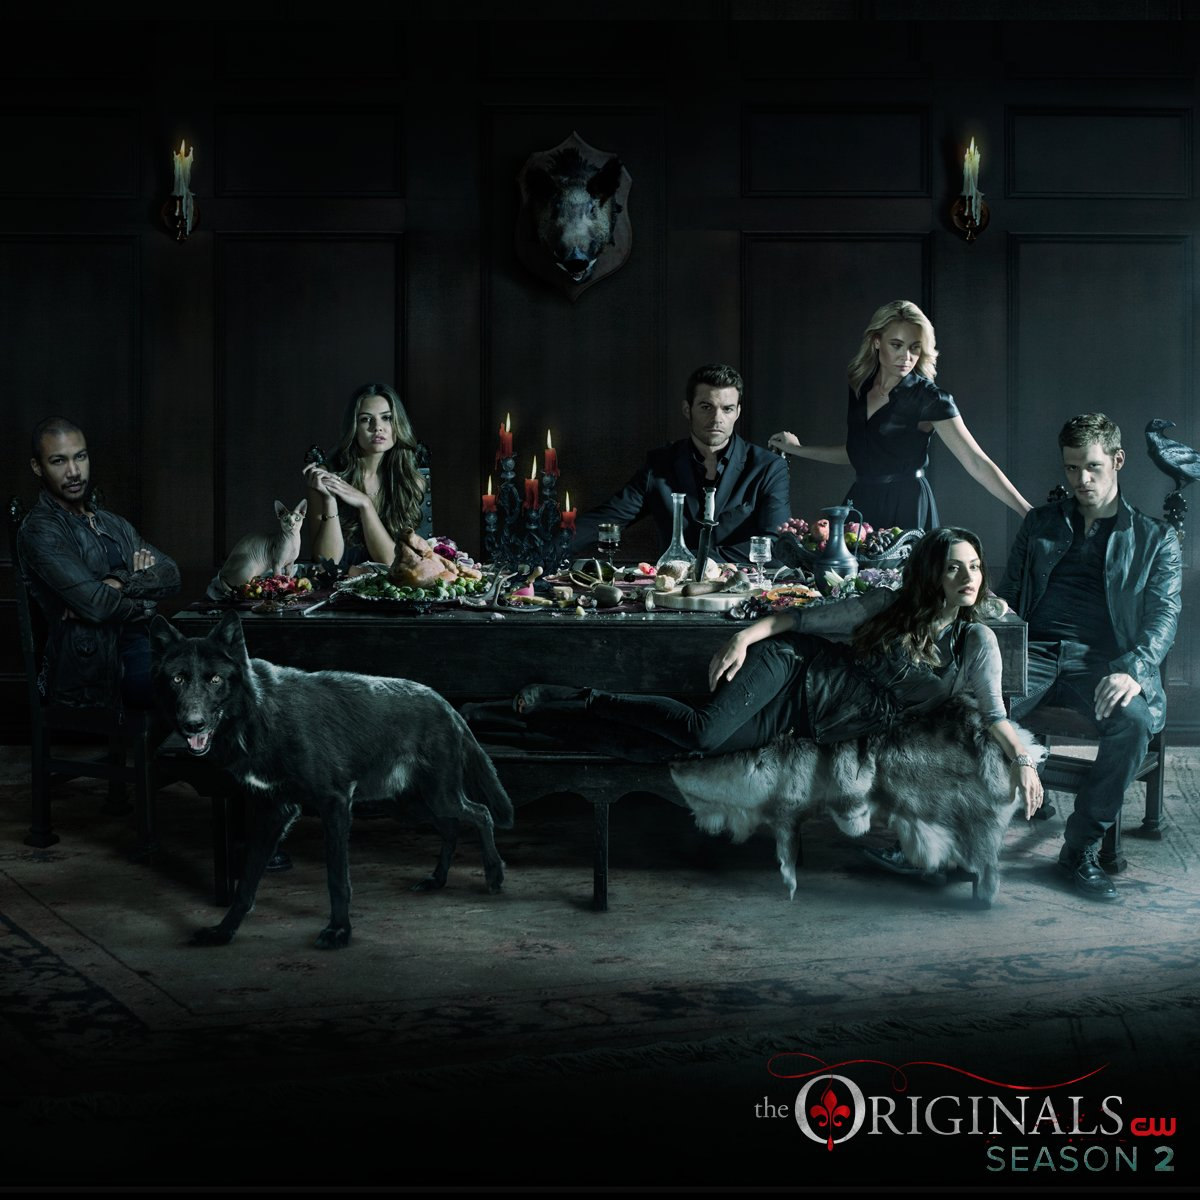 They'll always want more. The final season of #TheOriginals begins Wednesday, April 18 at 9/8c on The CW. https://t.co/22YnhiDH83